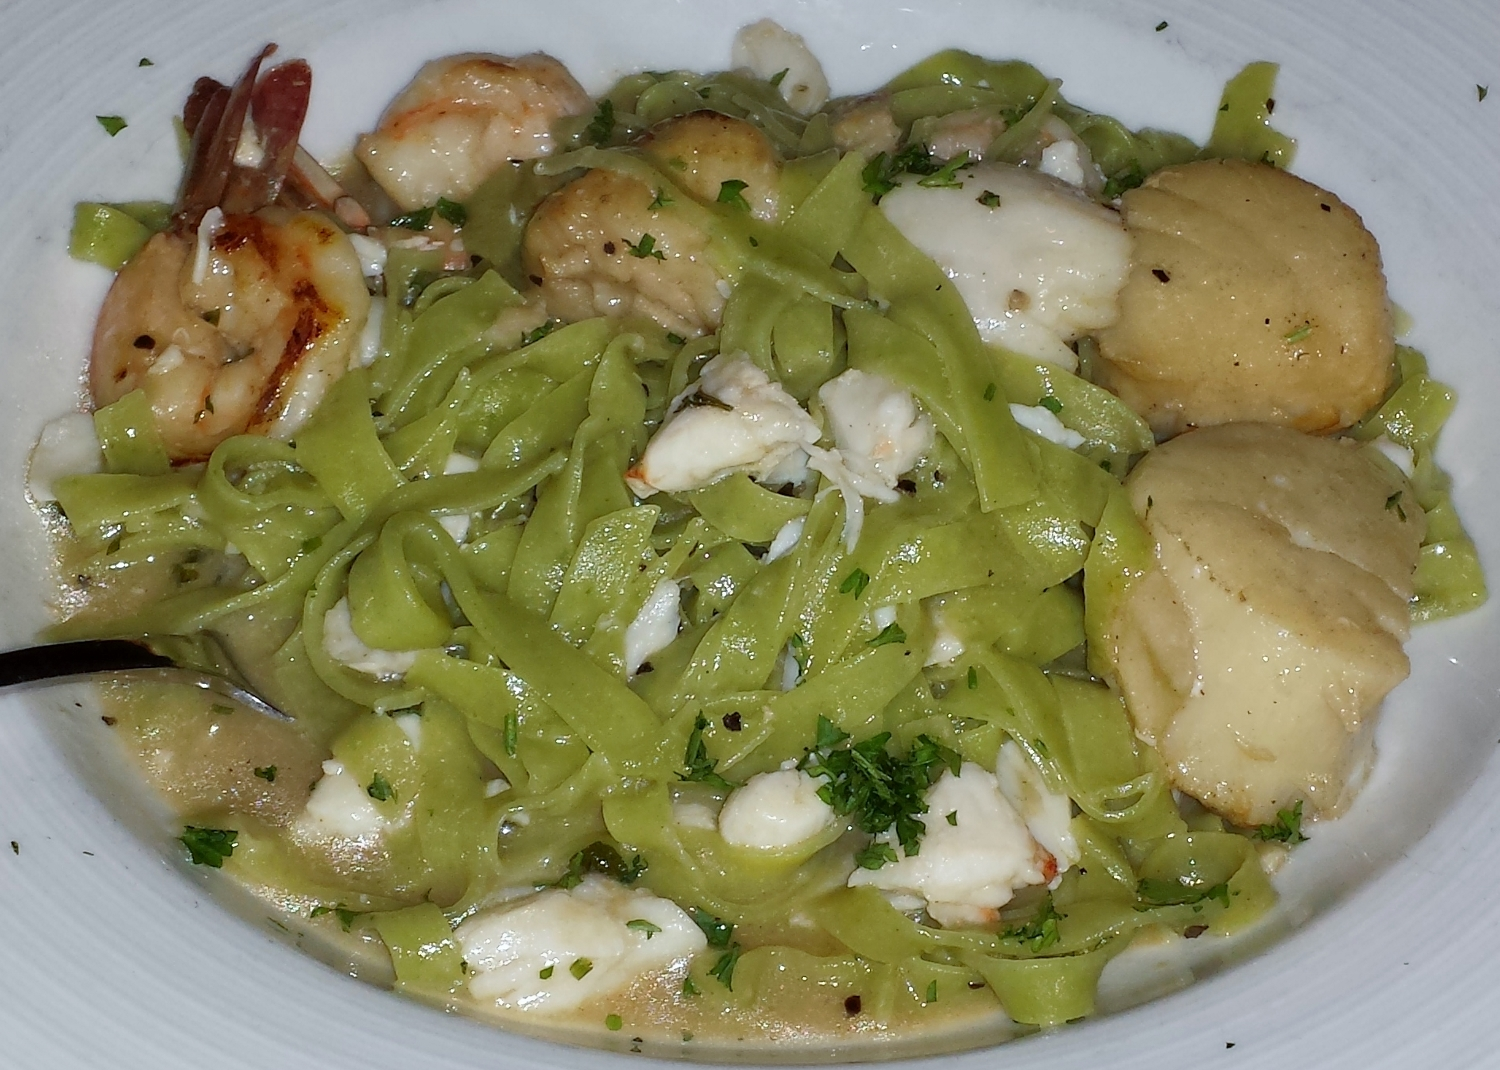 A special seafood pasta came loaded with lump crab, shrimp, and scallops, in a punchy seafood sauce.